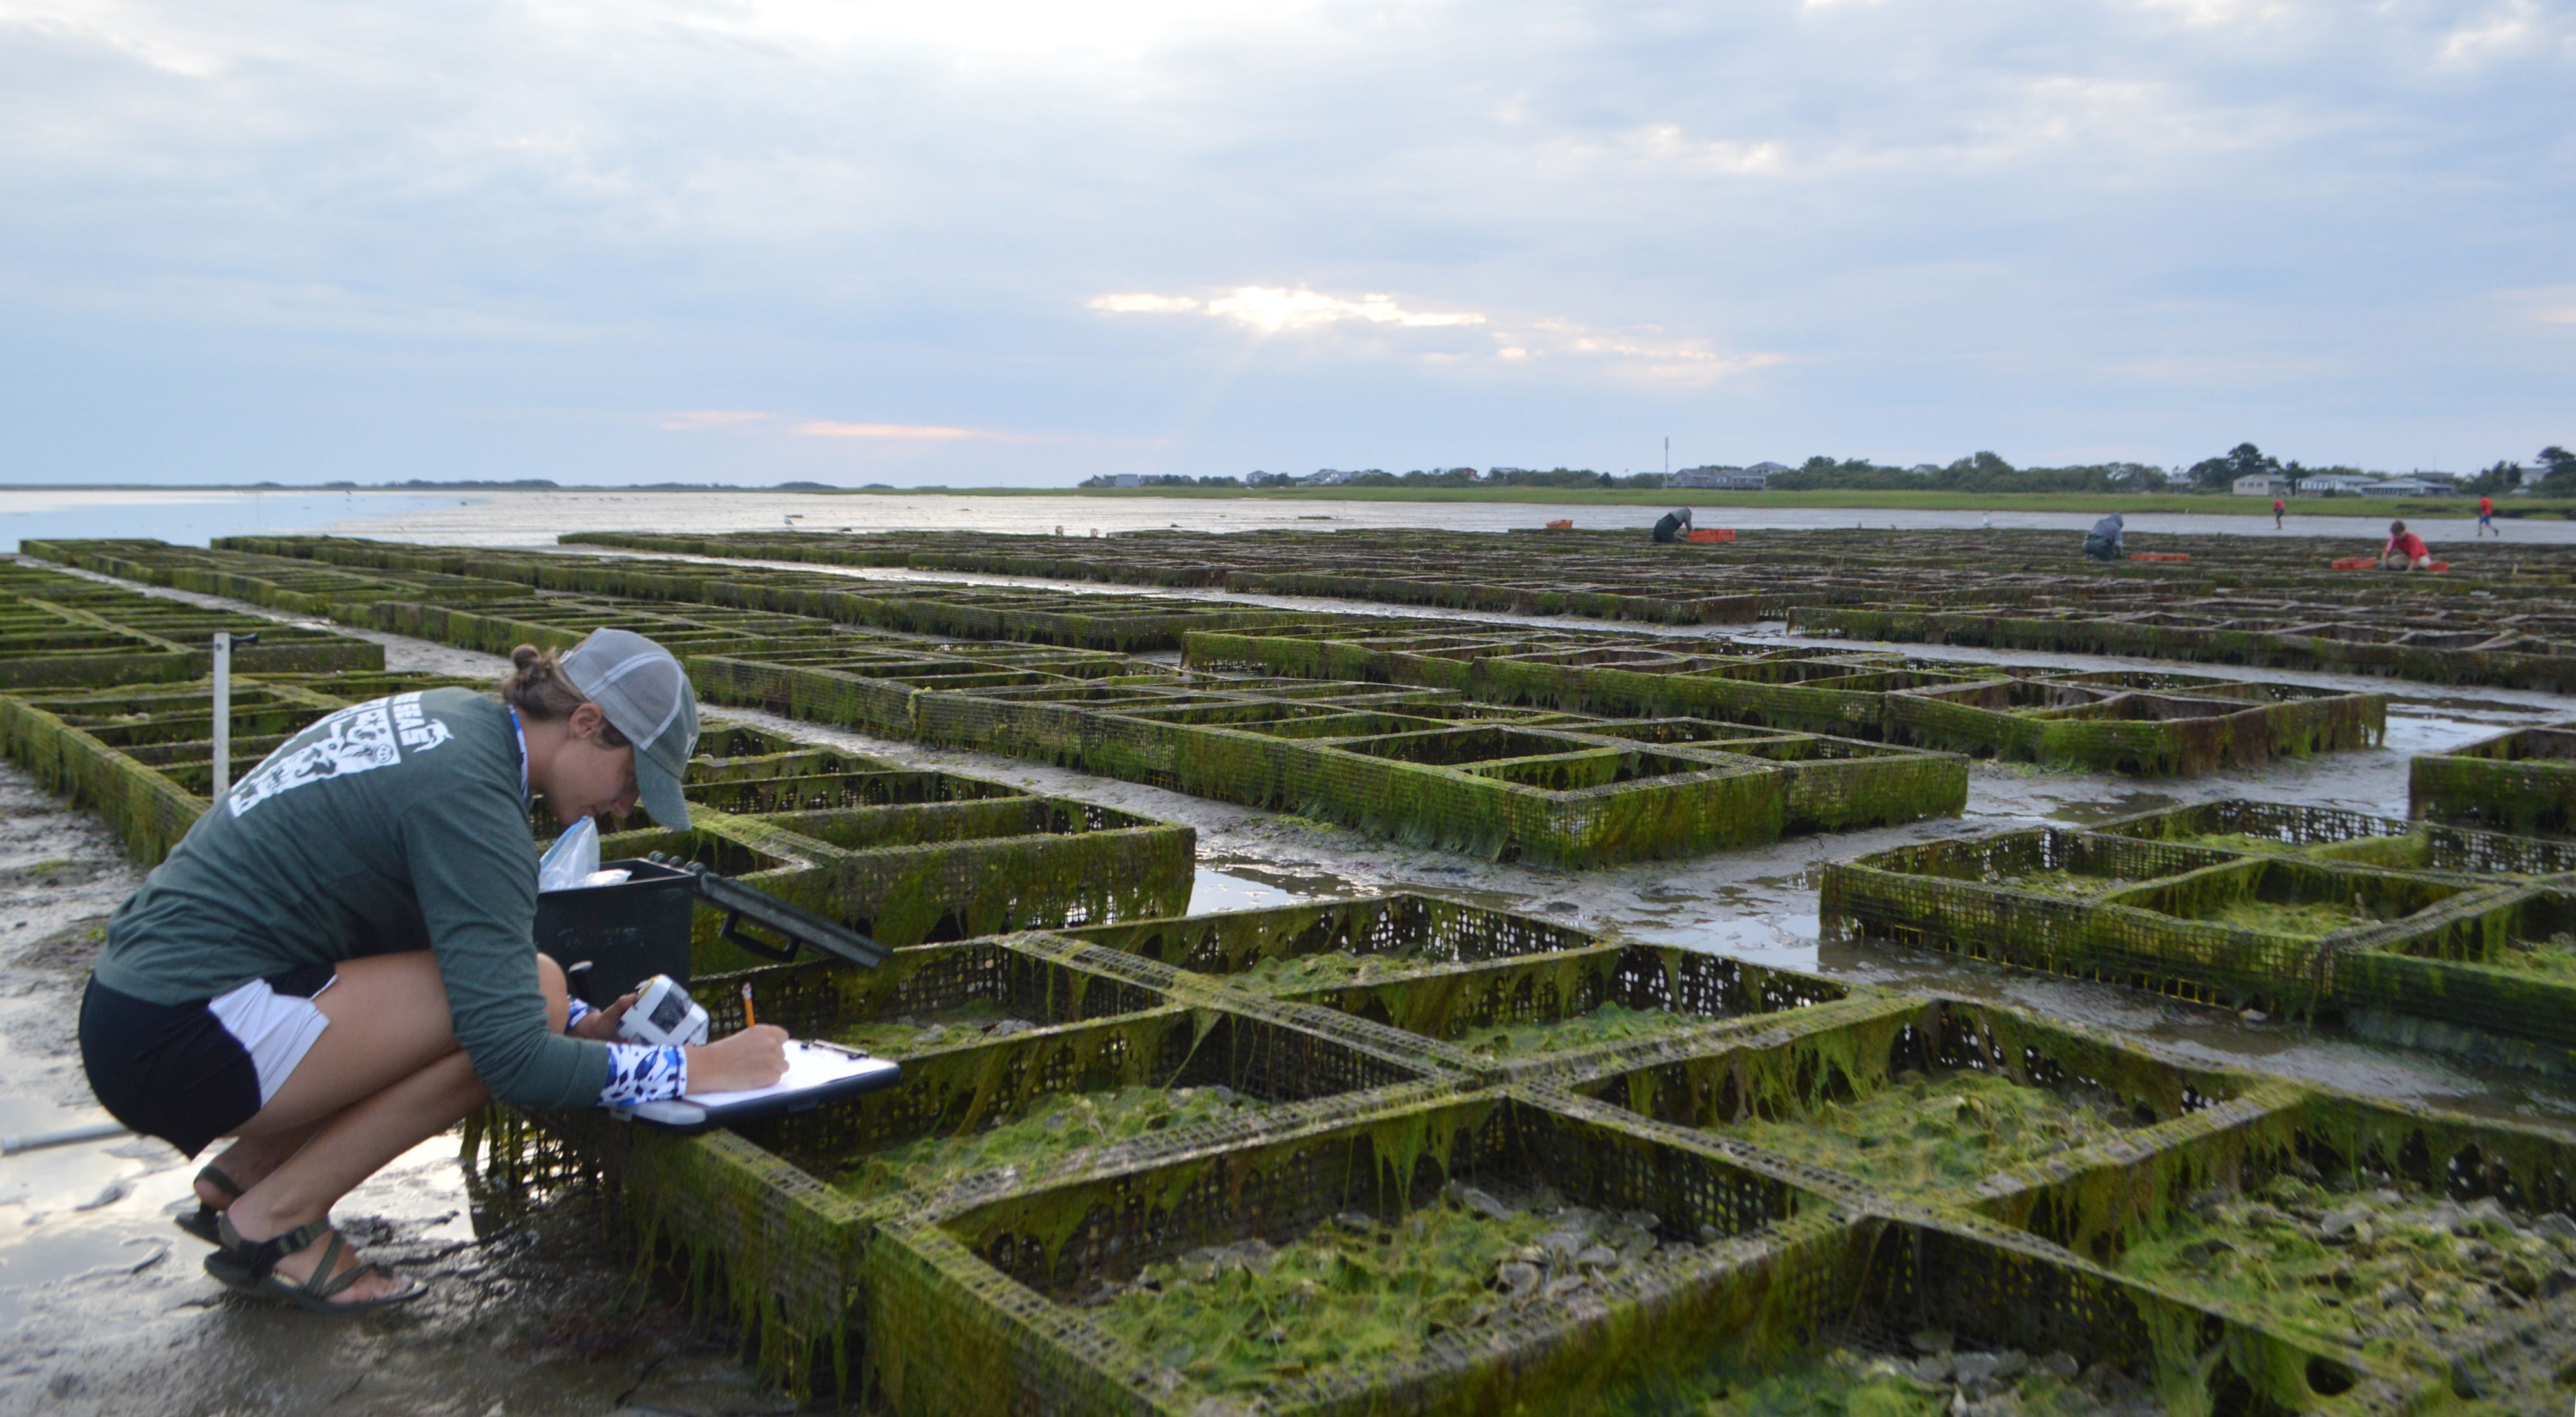 A researcher from Northeastern University begins to set up a GoPro to monitor oyster trays at Island Creek Oysters' Plymouth oyster farm.